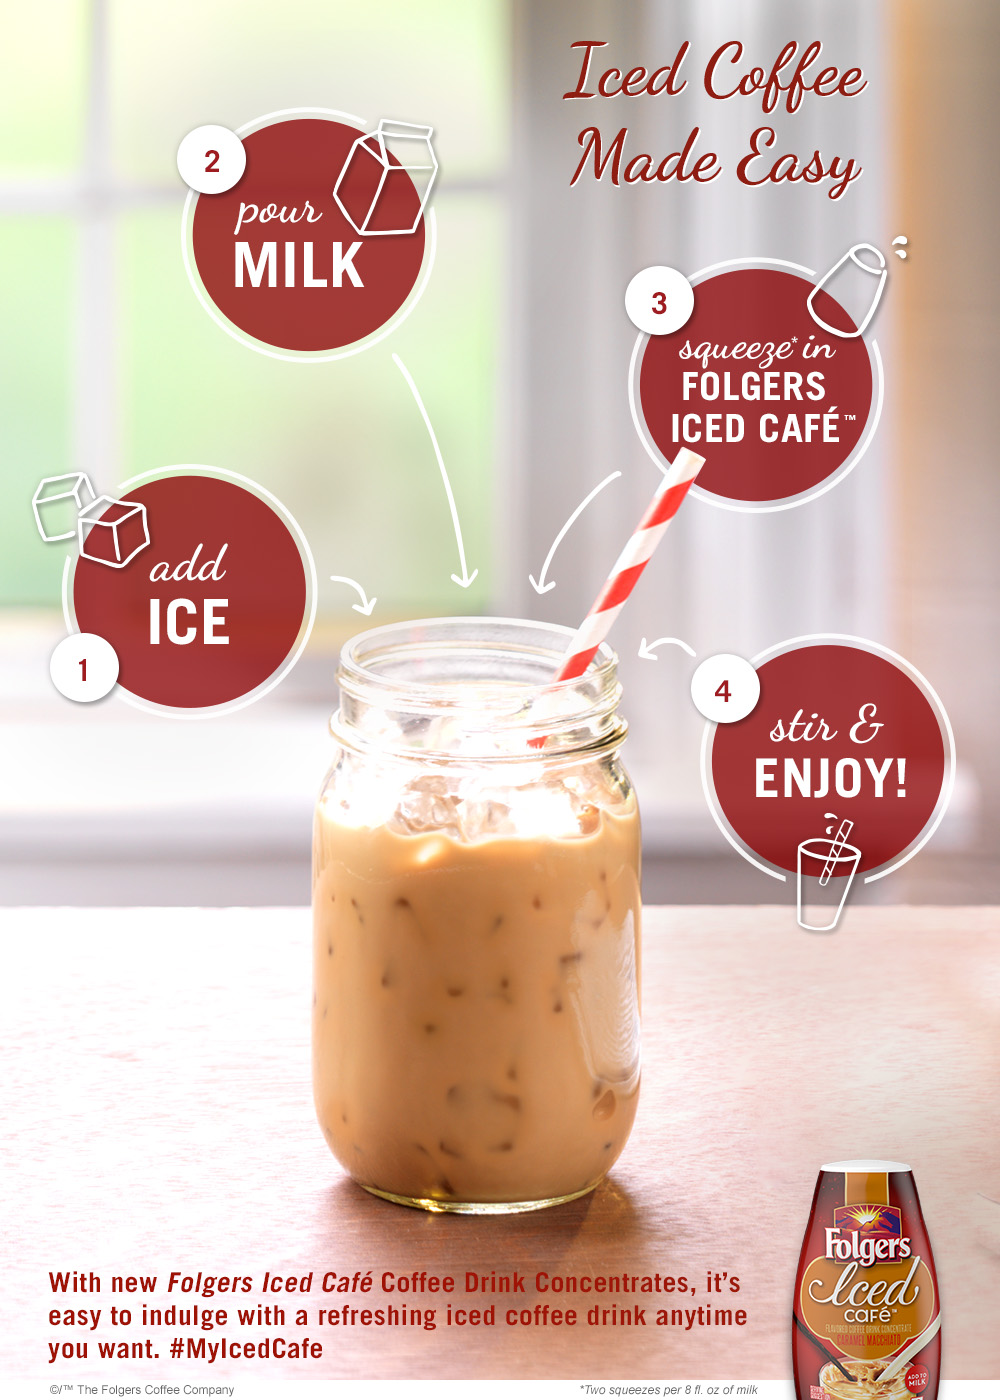 Folgers Iced Cafe Pinterest Pin